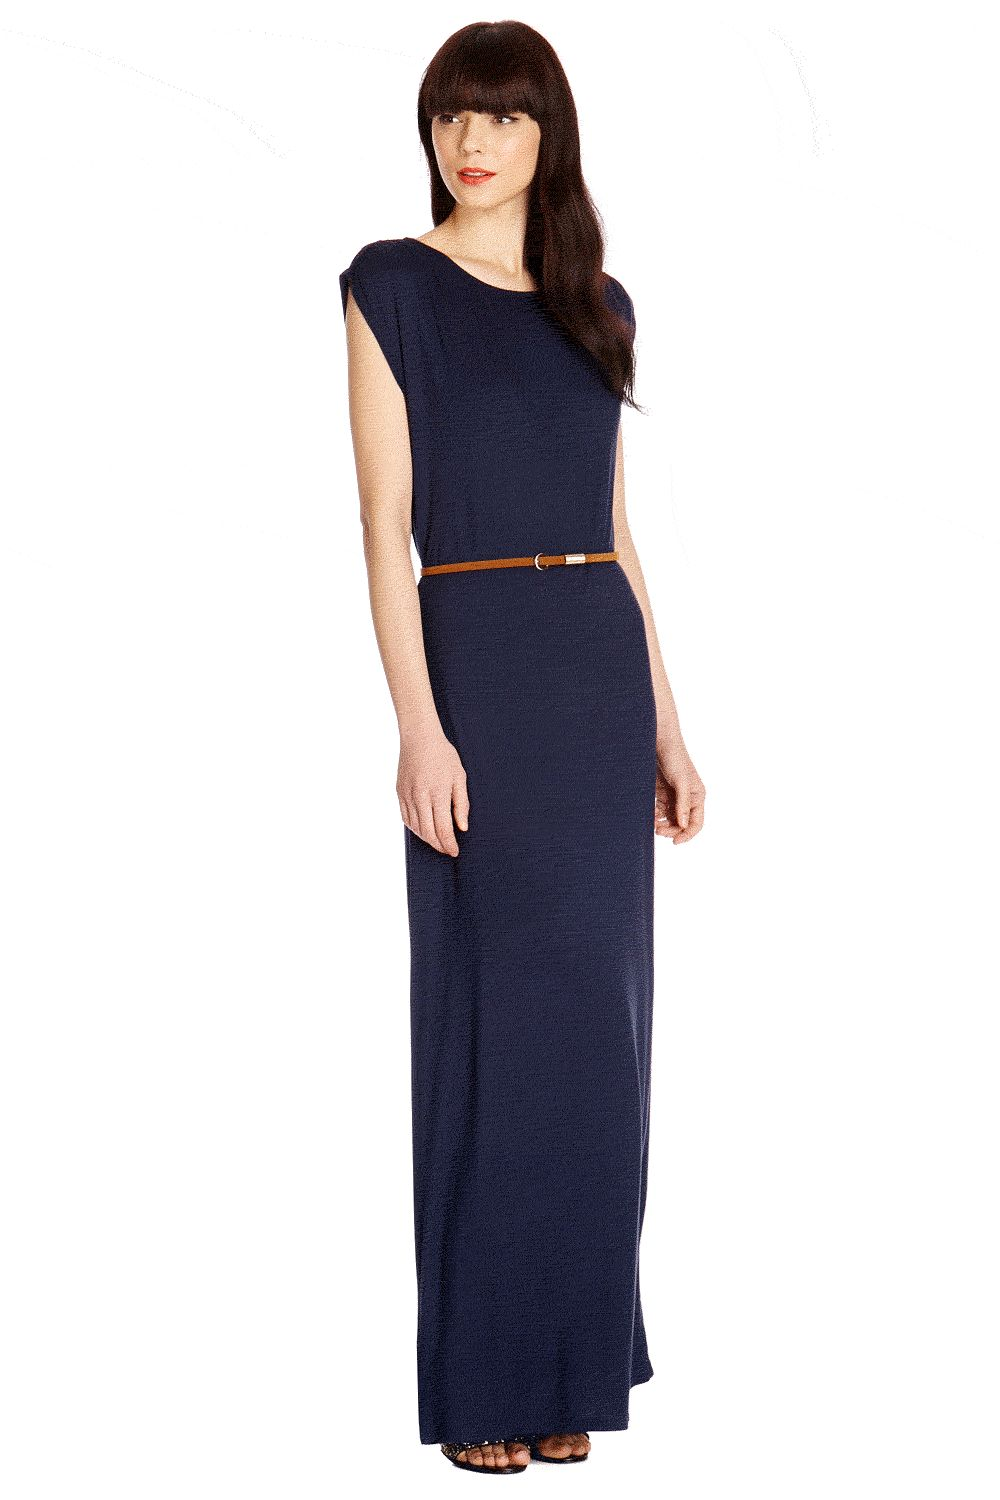 Cowl back maxi dress